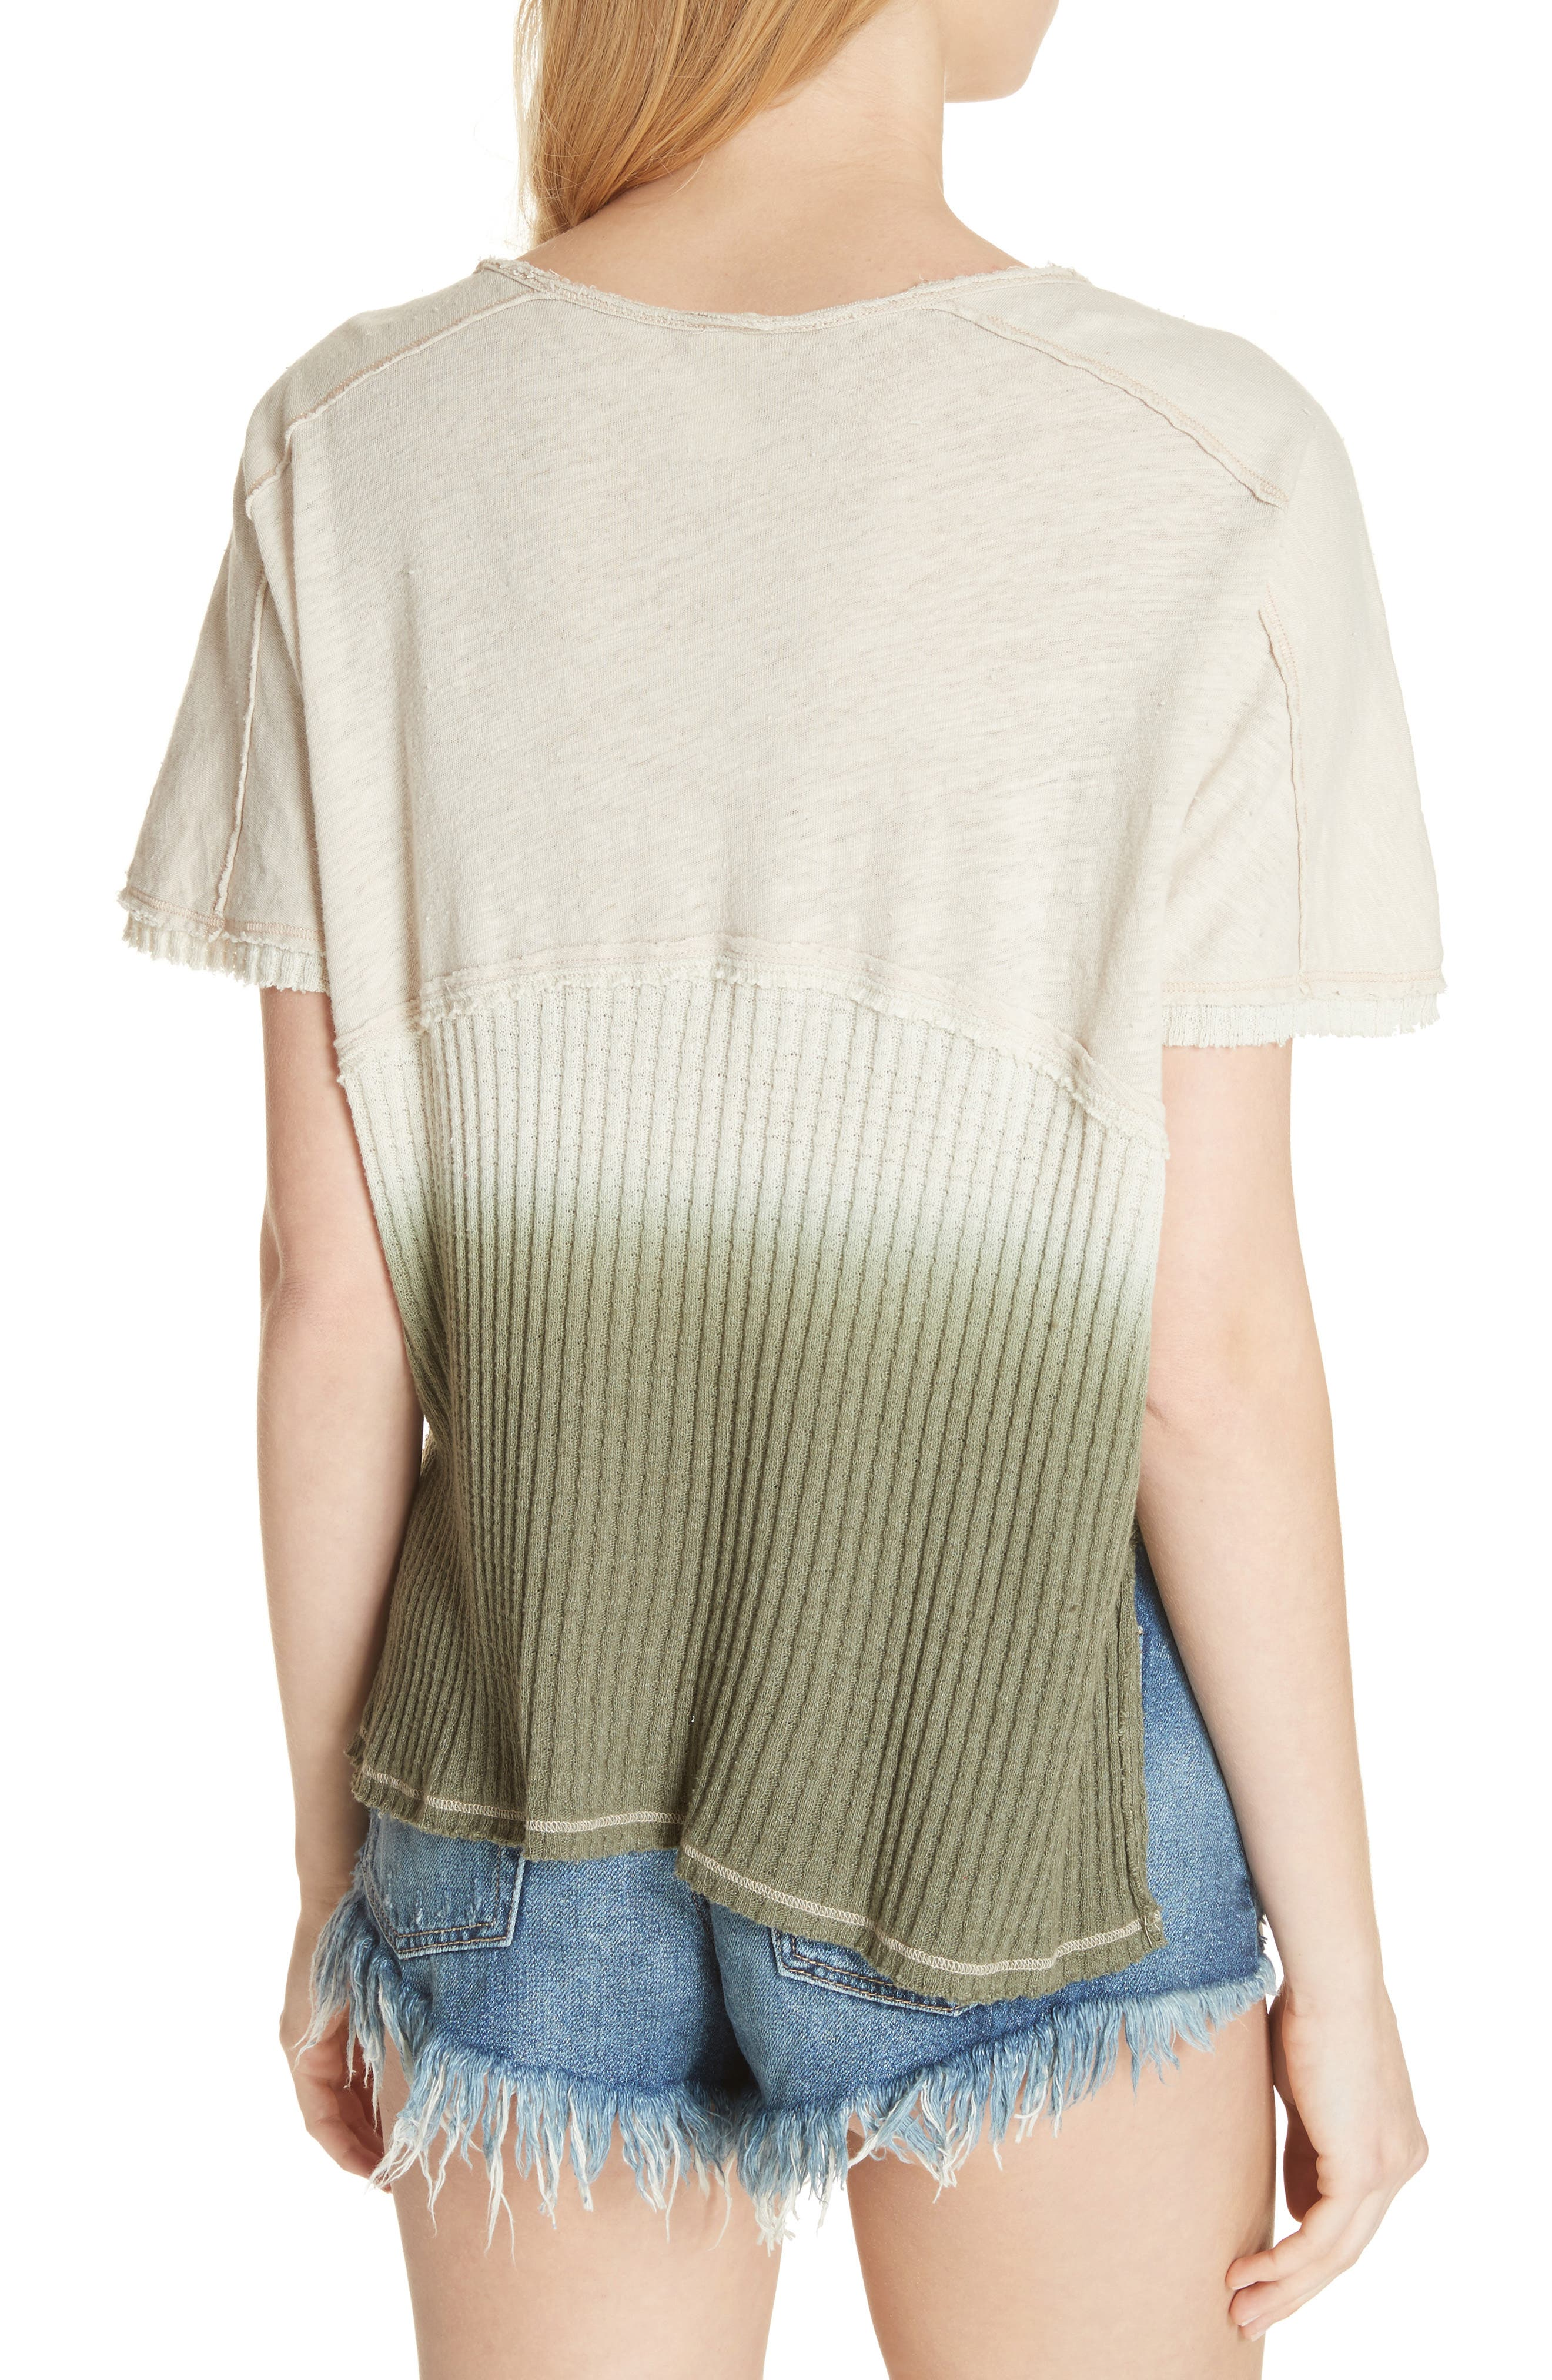 FREE PEOPLE,                             Sun Dial Tee,                             Alternate thumbnail 2, color,                             251